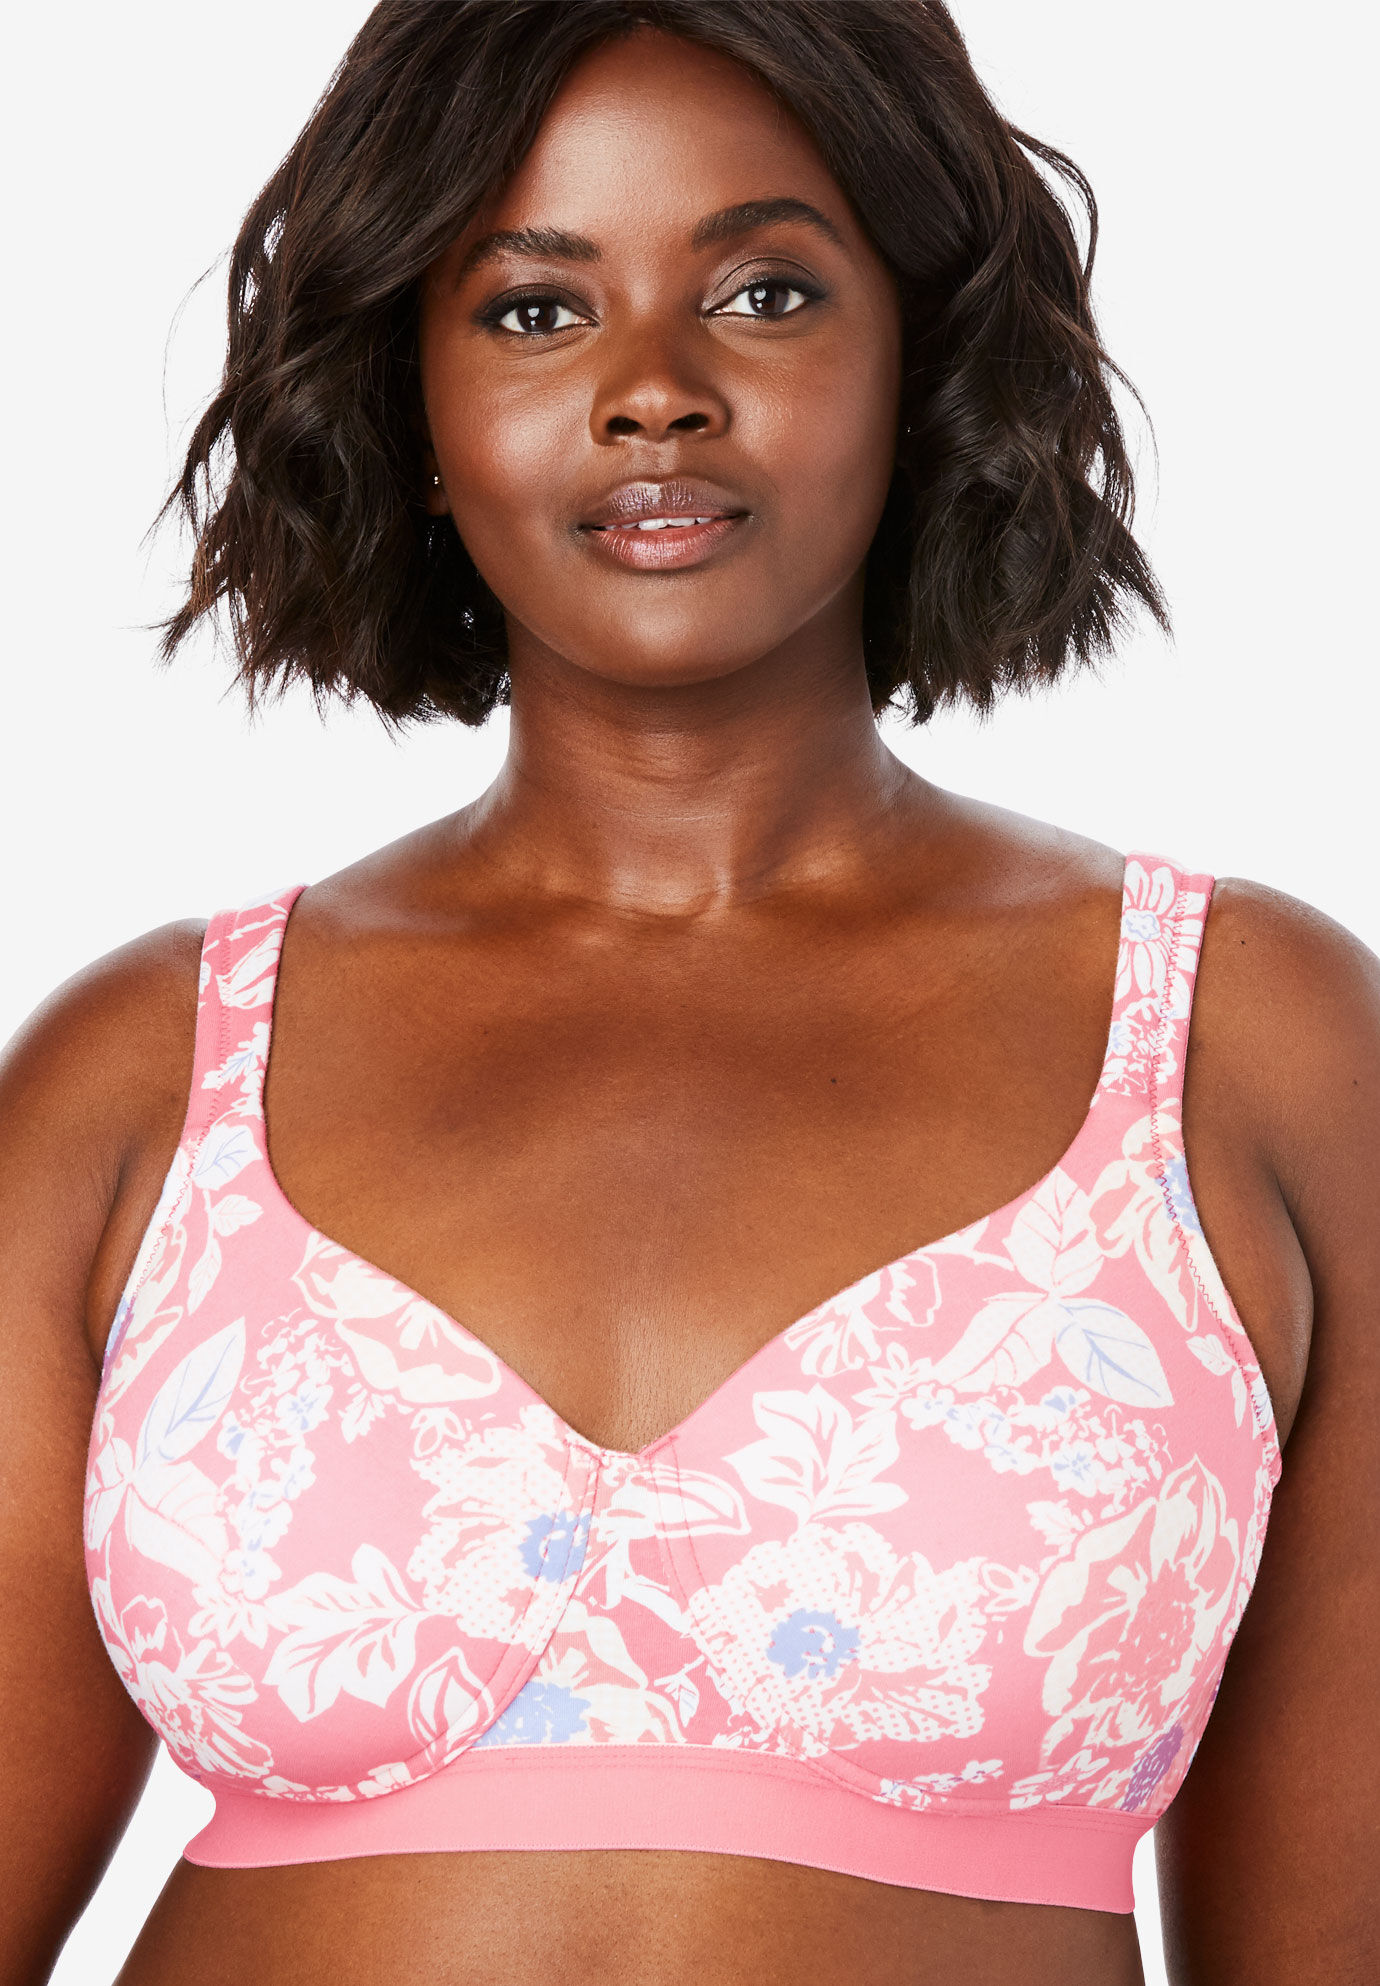 Bottom band cotton wireless  shirt bra by comfort choice also plus size bras with large cup sizes woman within rh womanwithin